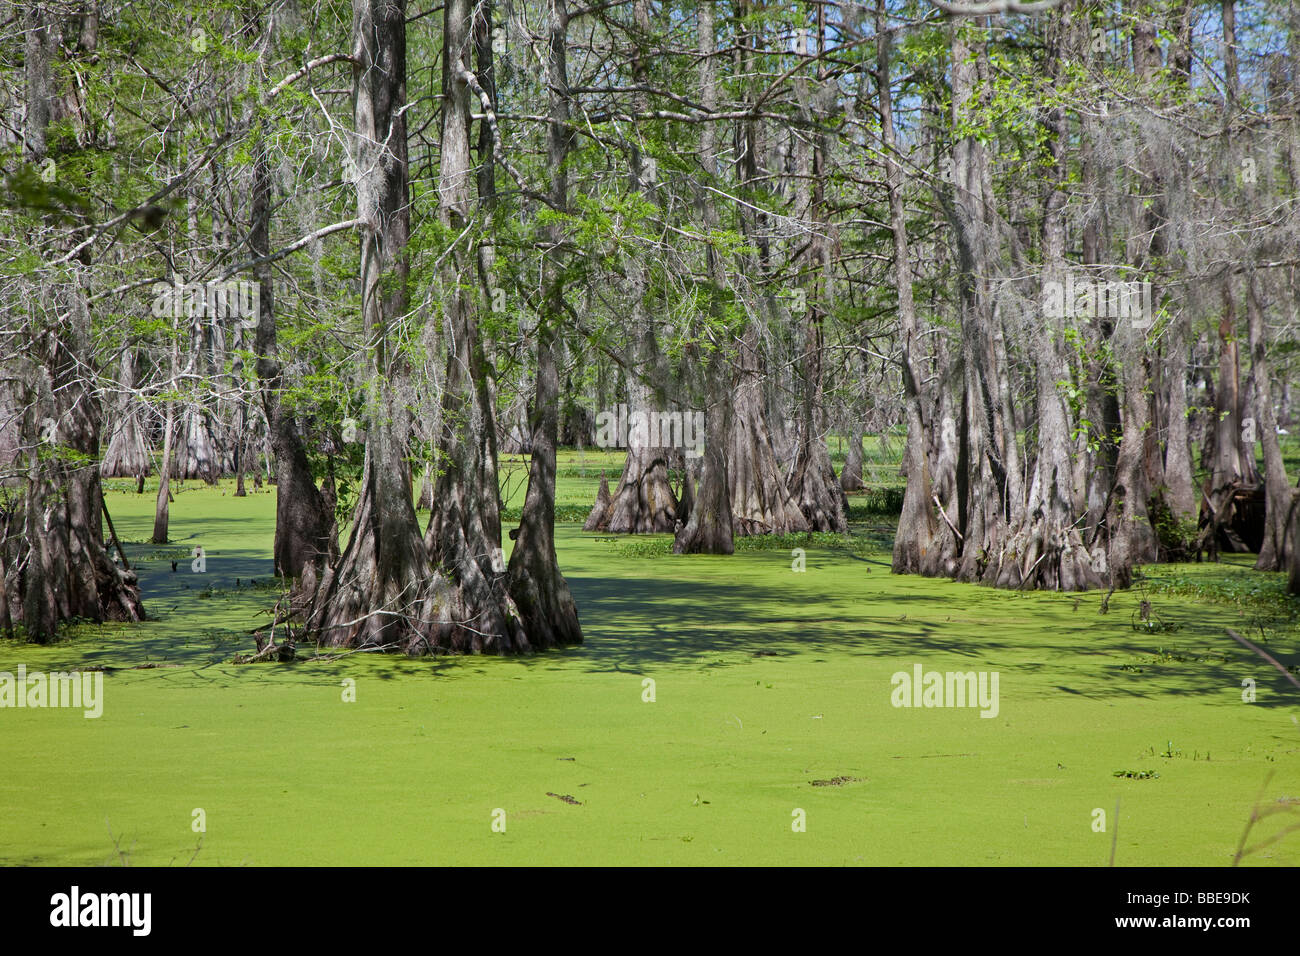 Breaux Bridge Louisiana The Cypress Island Preserve managed by the Nature Conservancy - Stock Image